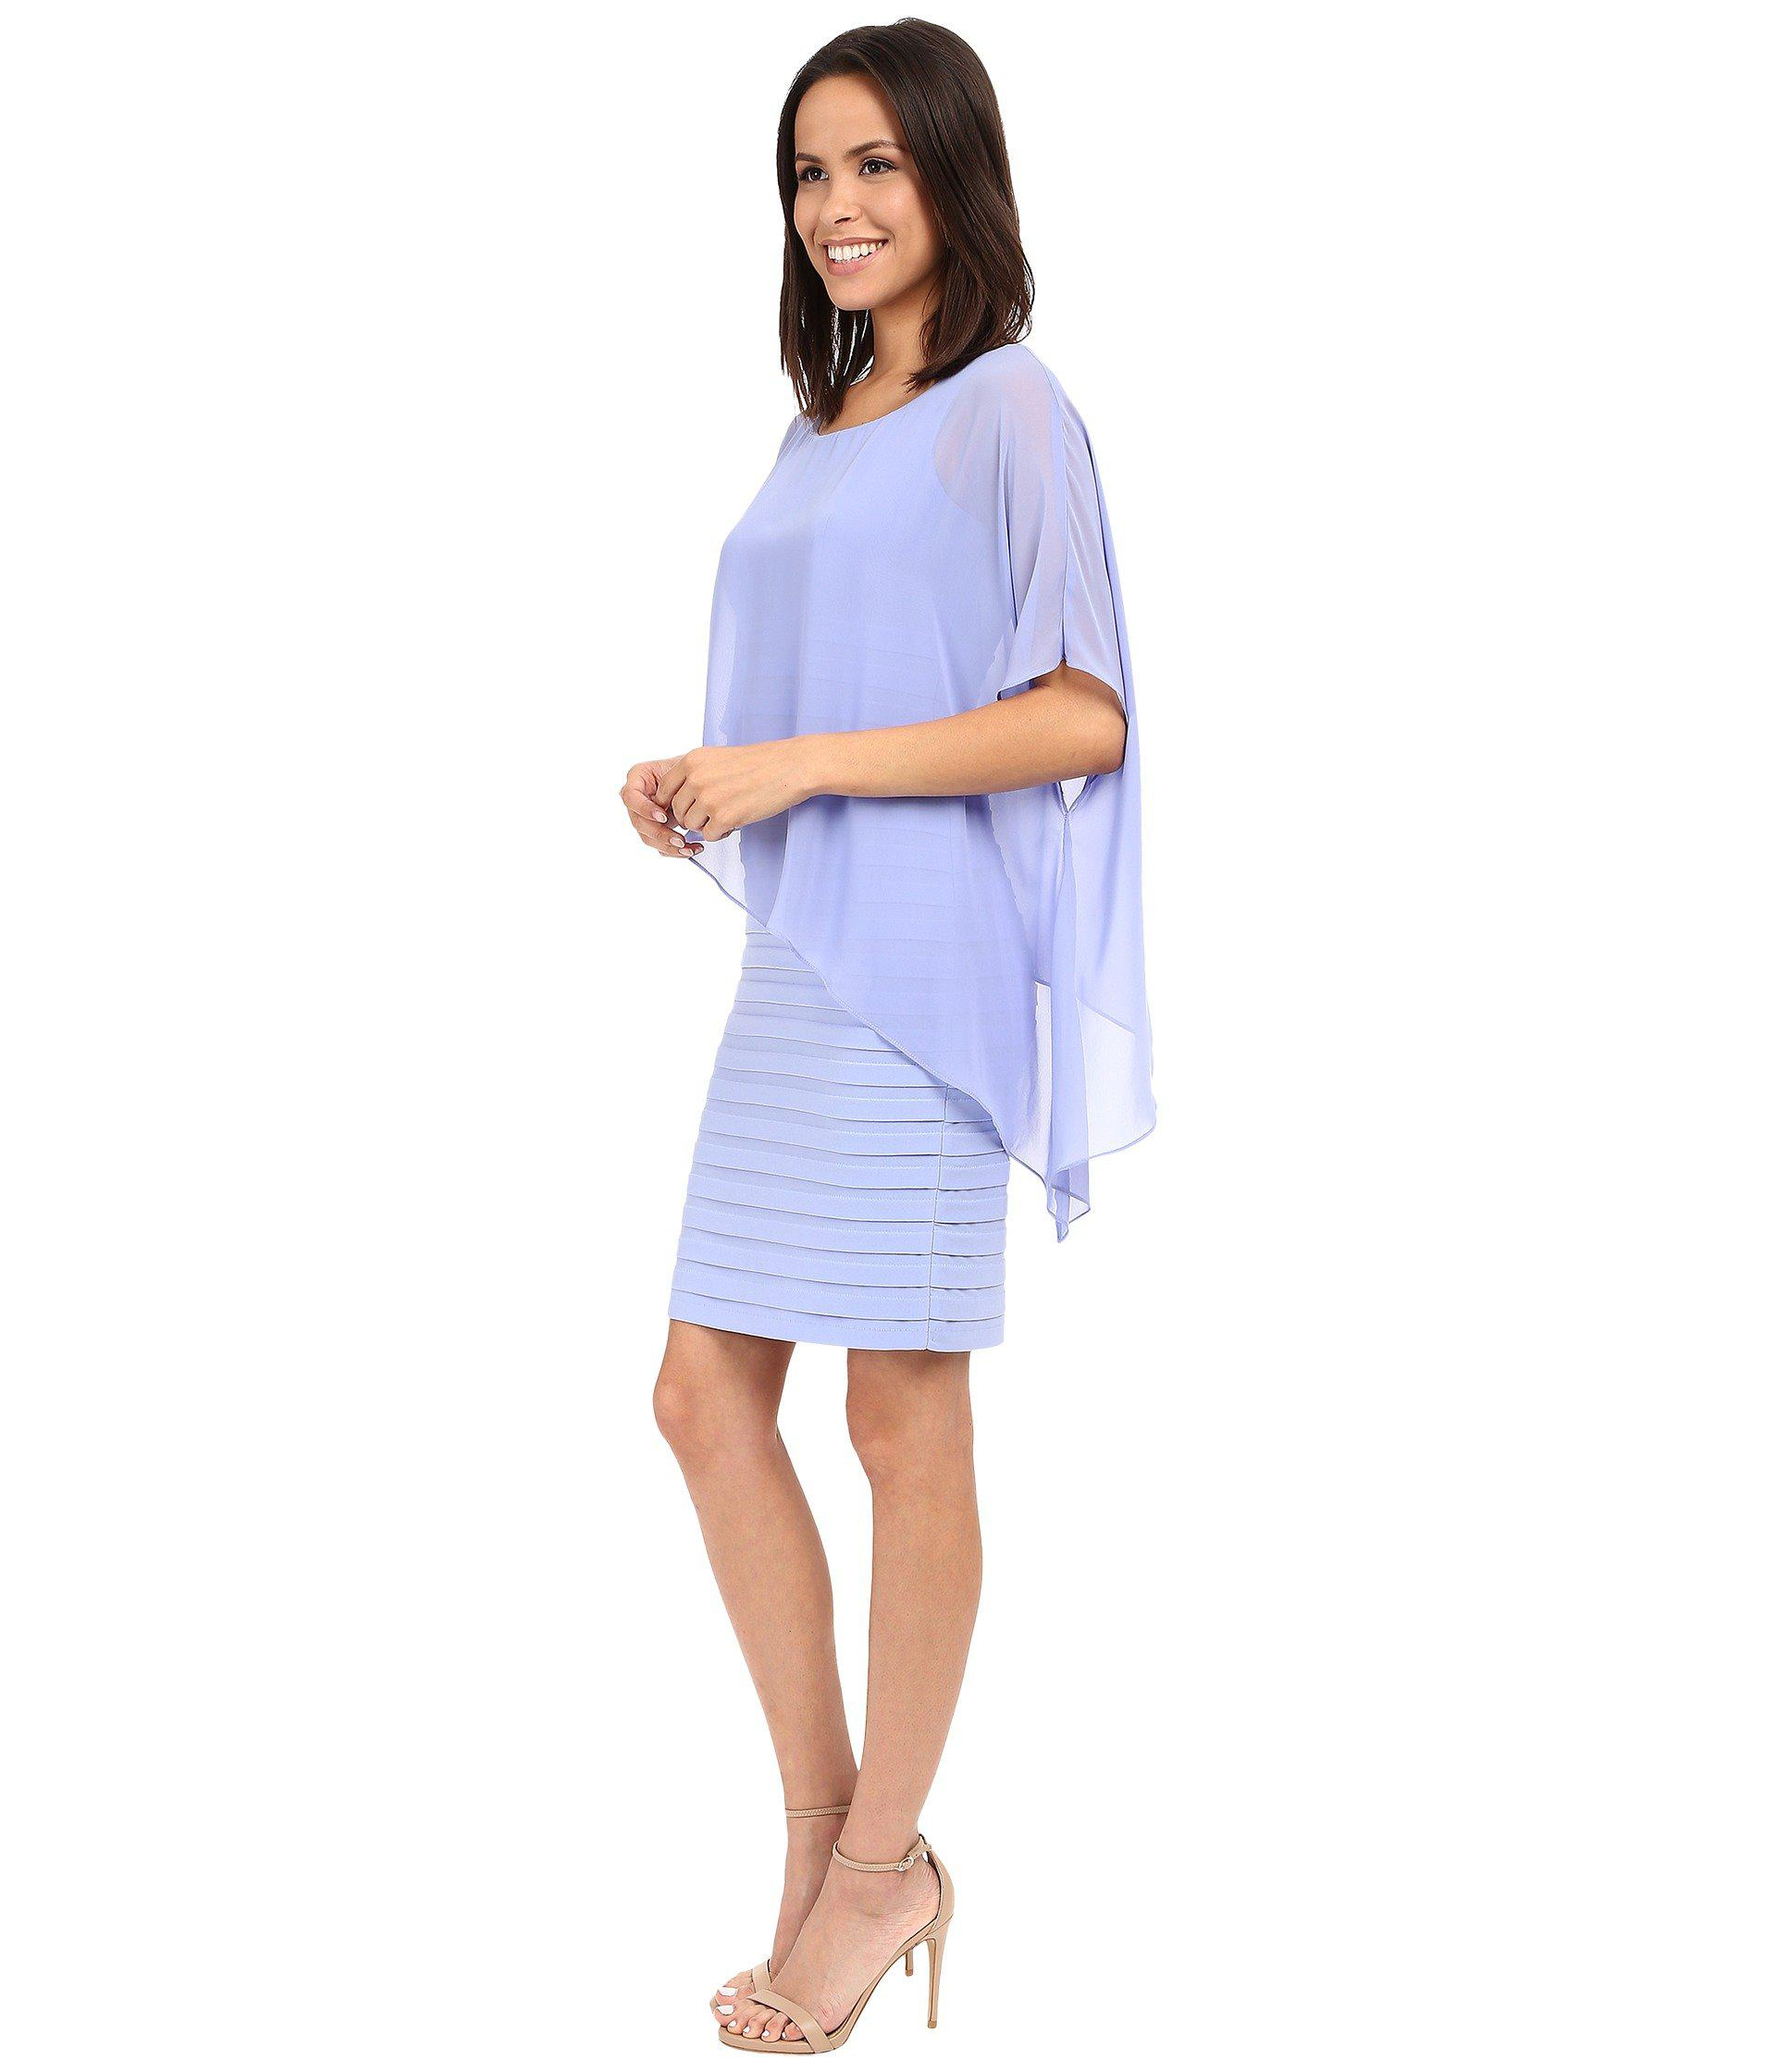 42695623ec05 Lyst - Adrianna Papell Chiffon Drape Overlay With Banding in Blue